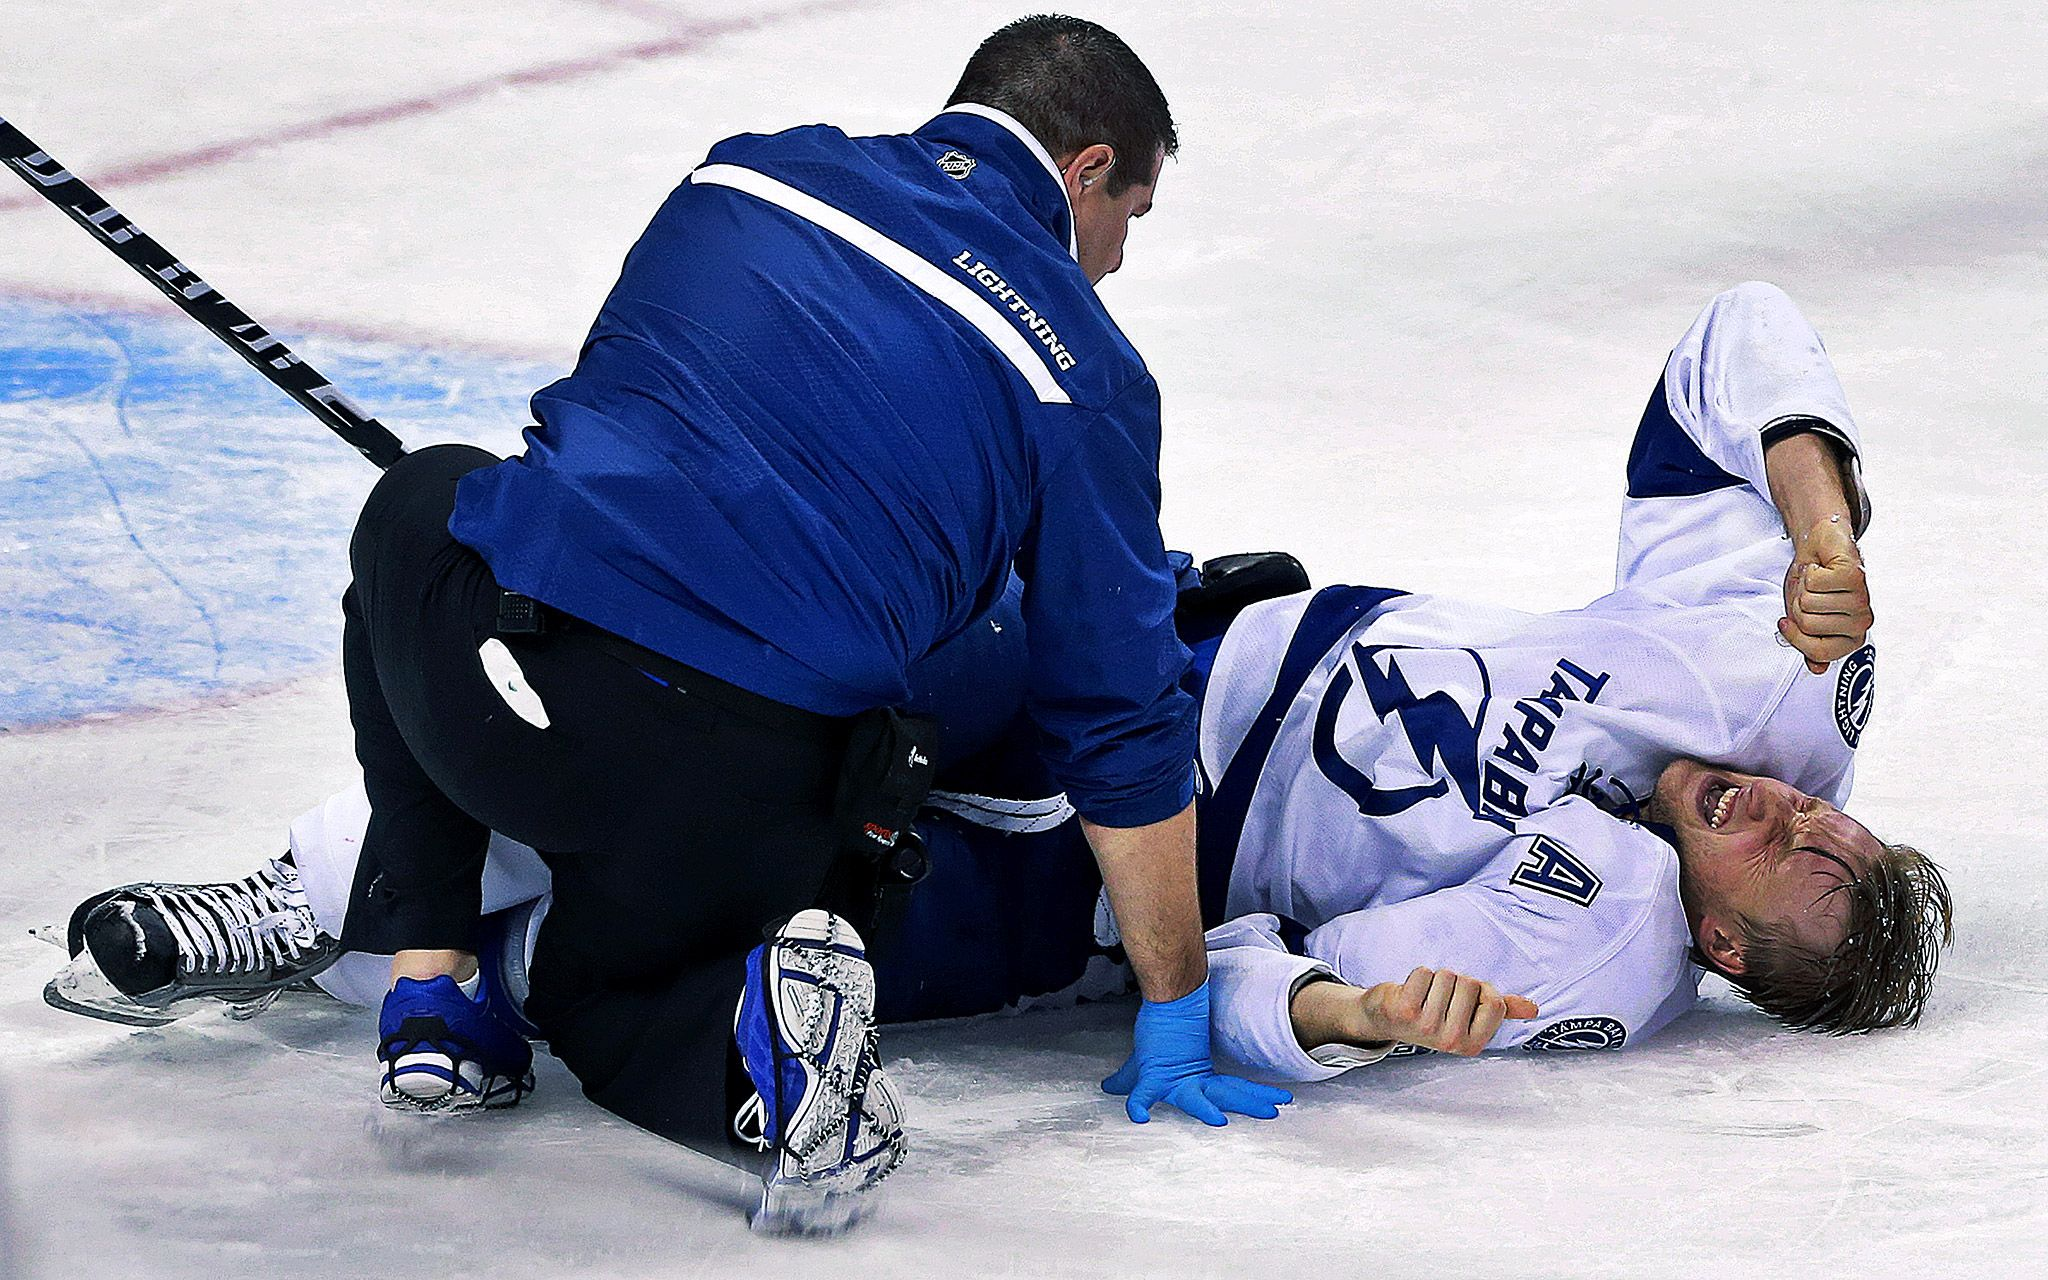 Top 10 Shocking Recent On-Ice Injuries in the NHL